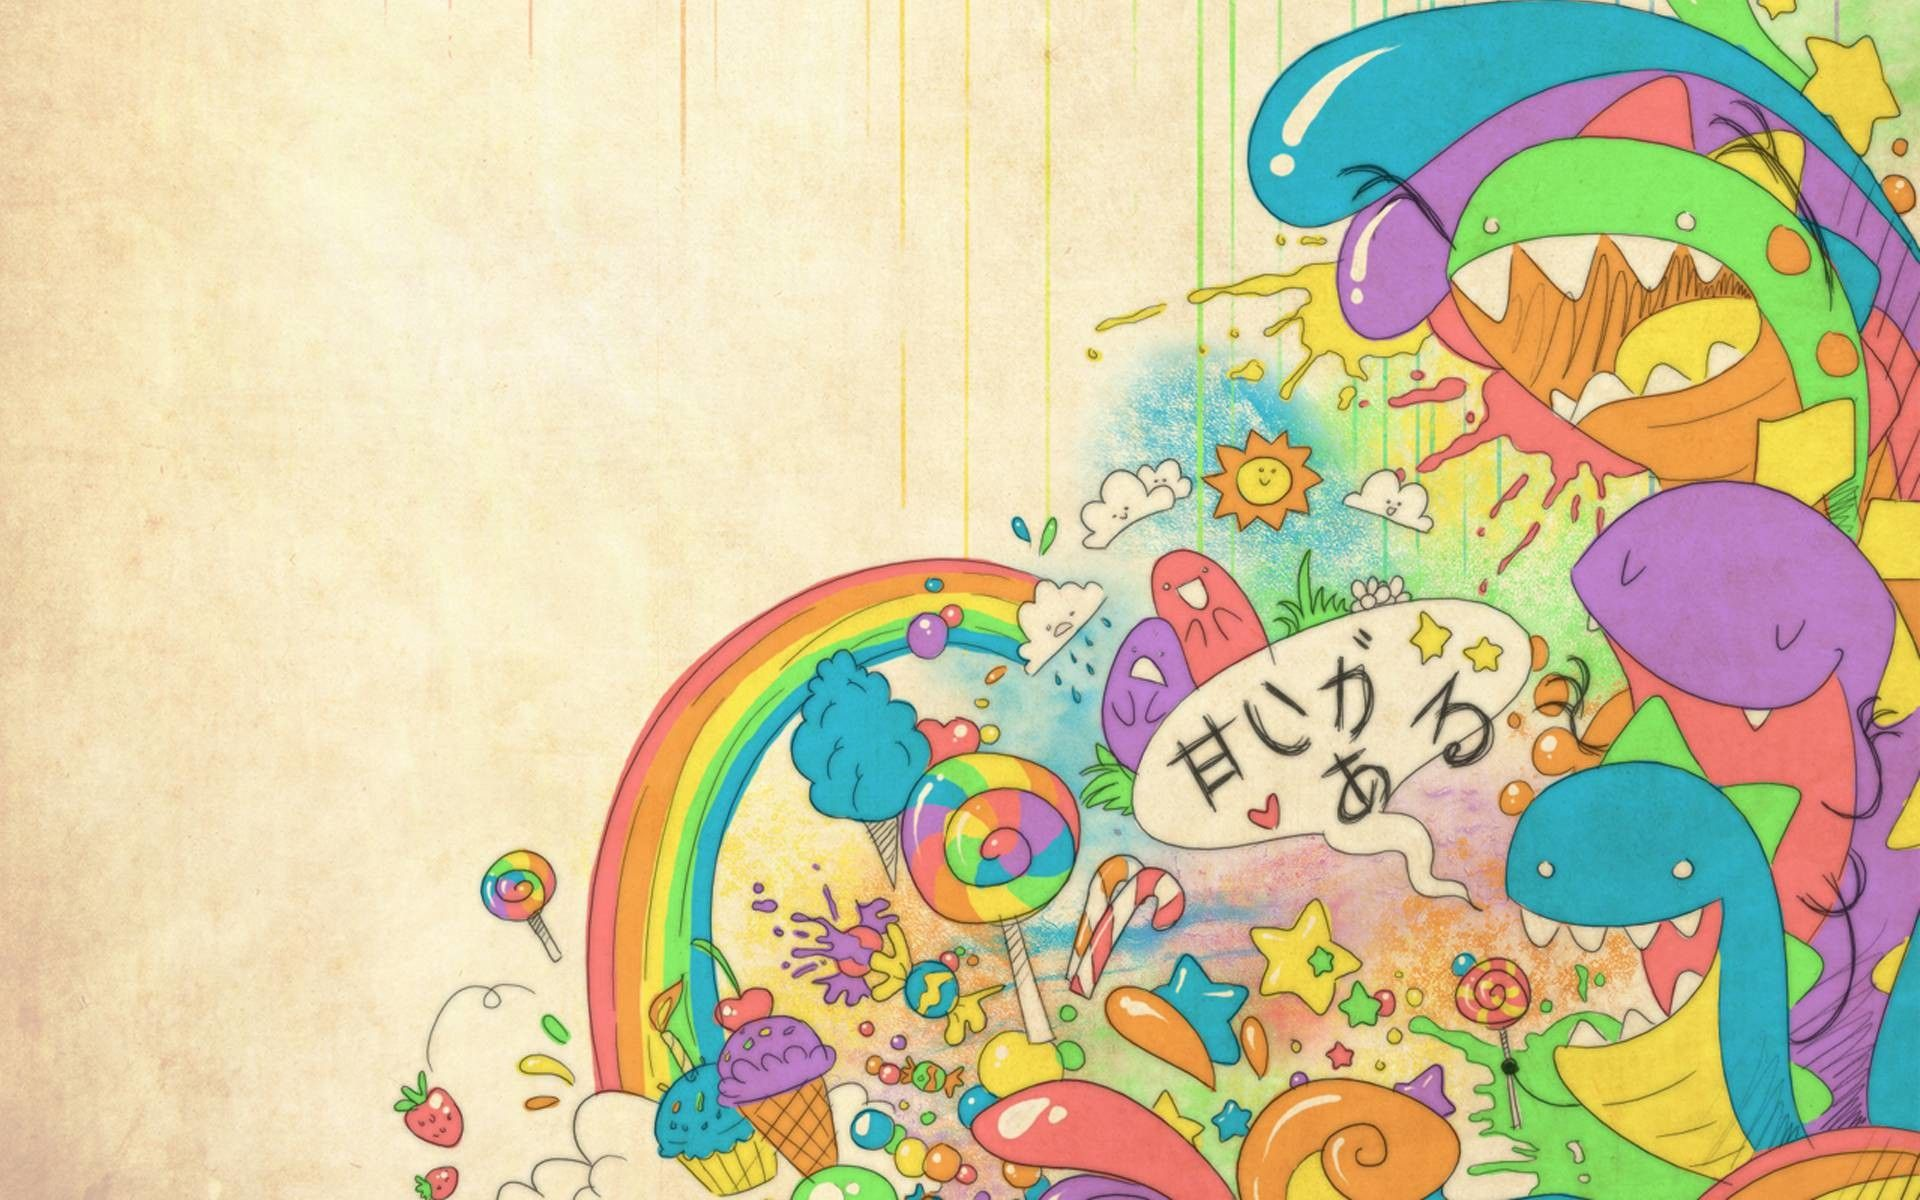 1920x1200 Candy Wallpaper High Quality Candy Wallpapers Full Hd Candy Cartoon Wallpaper Drawing Wallpaper Anime Wallpaper